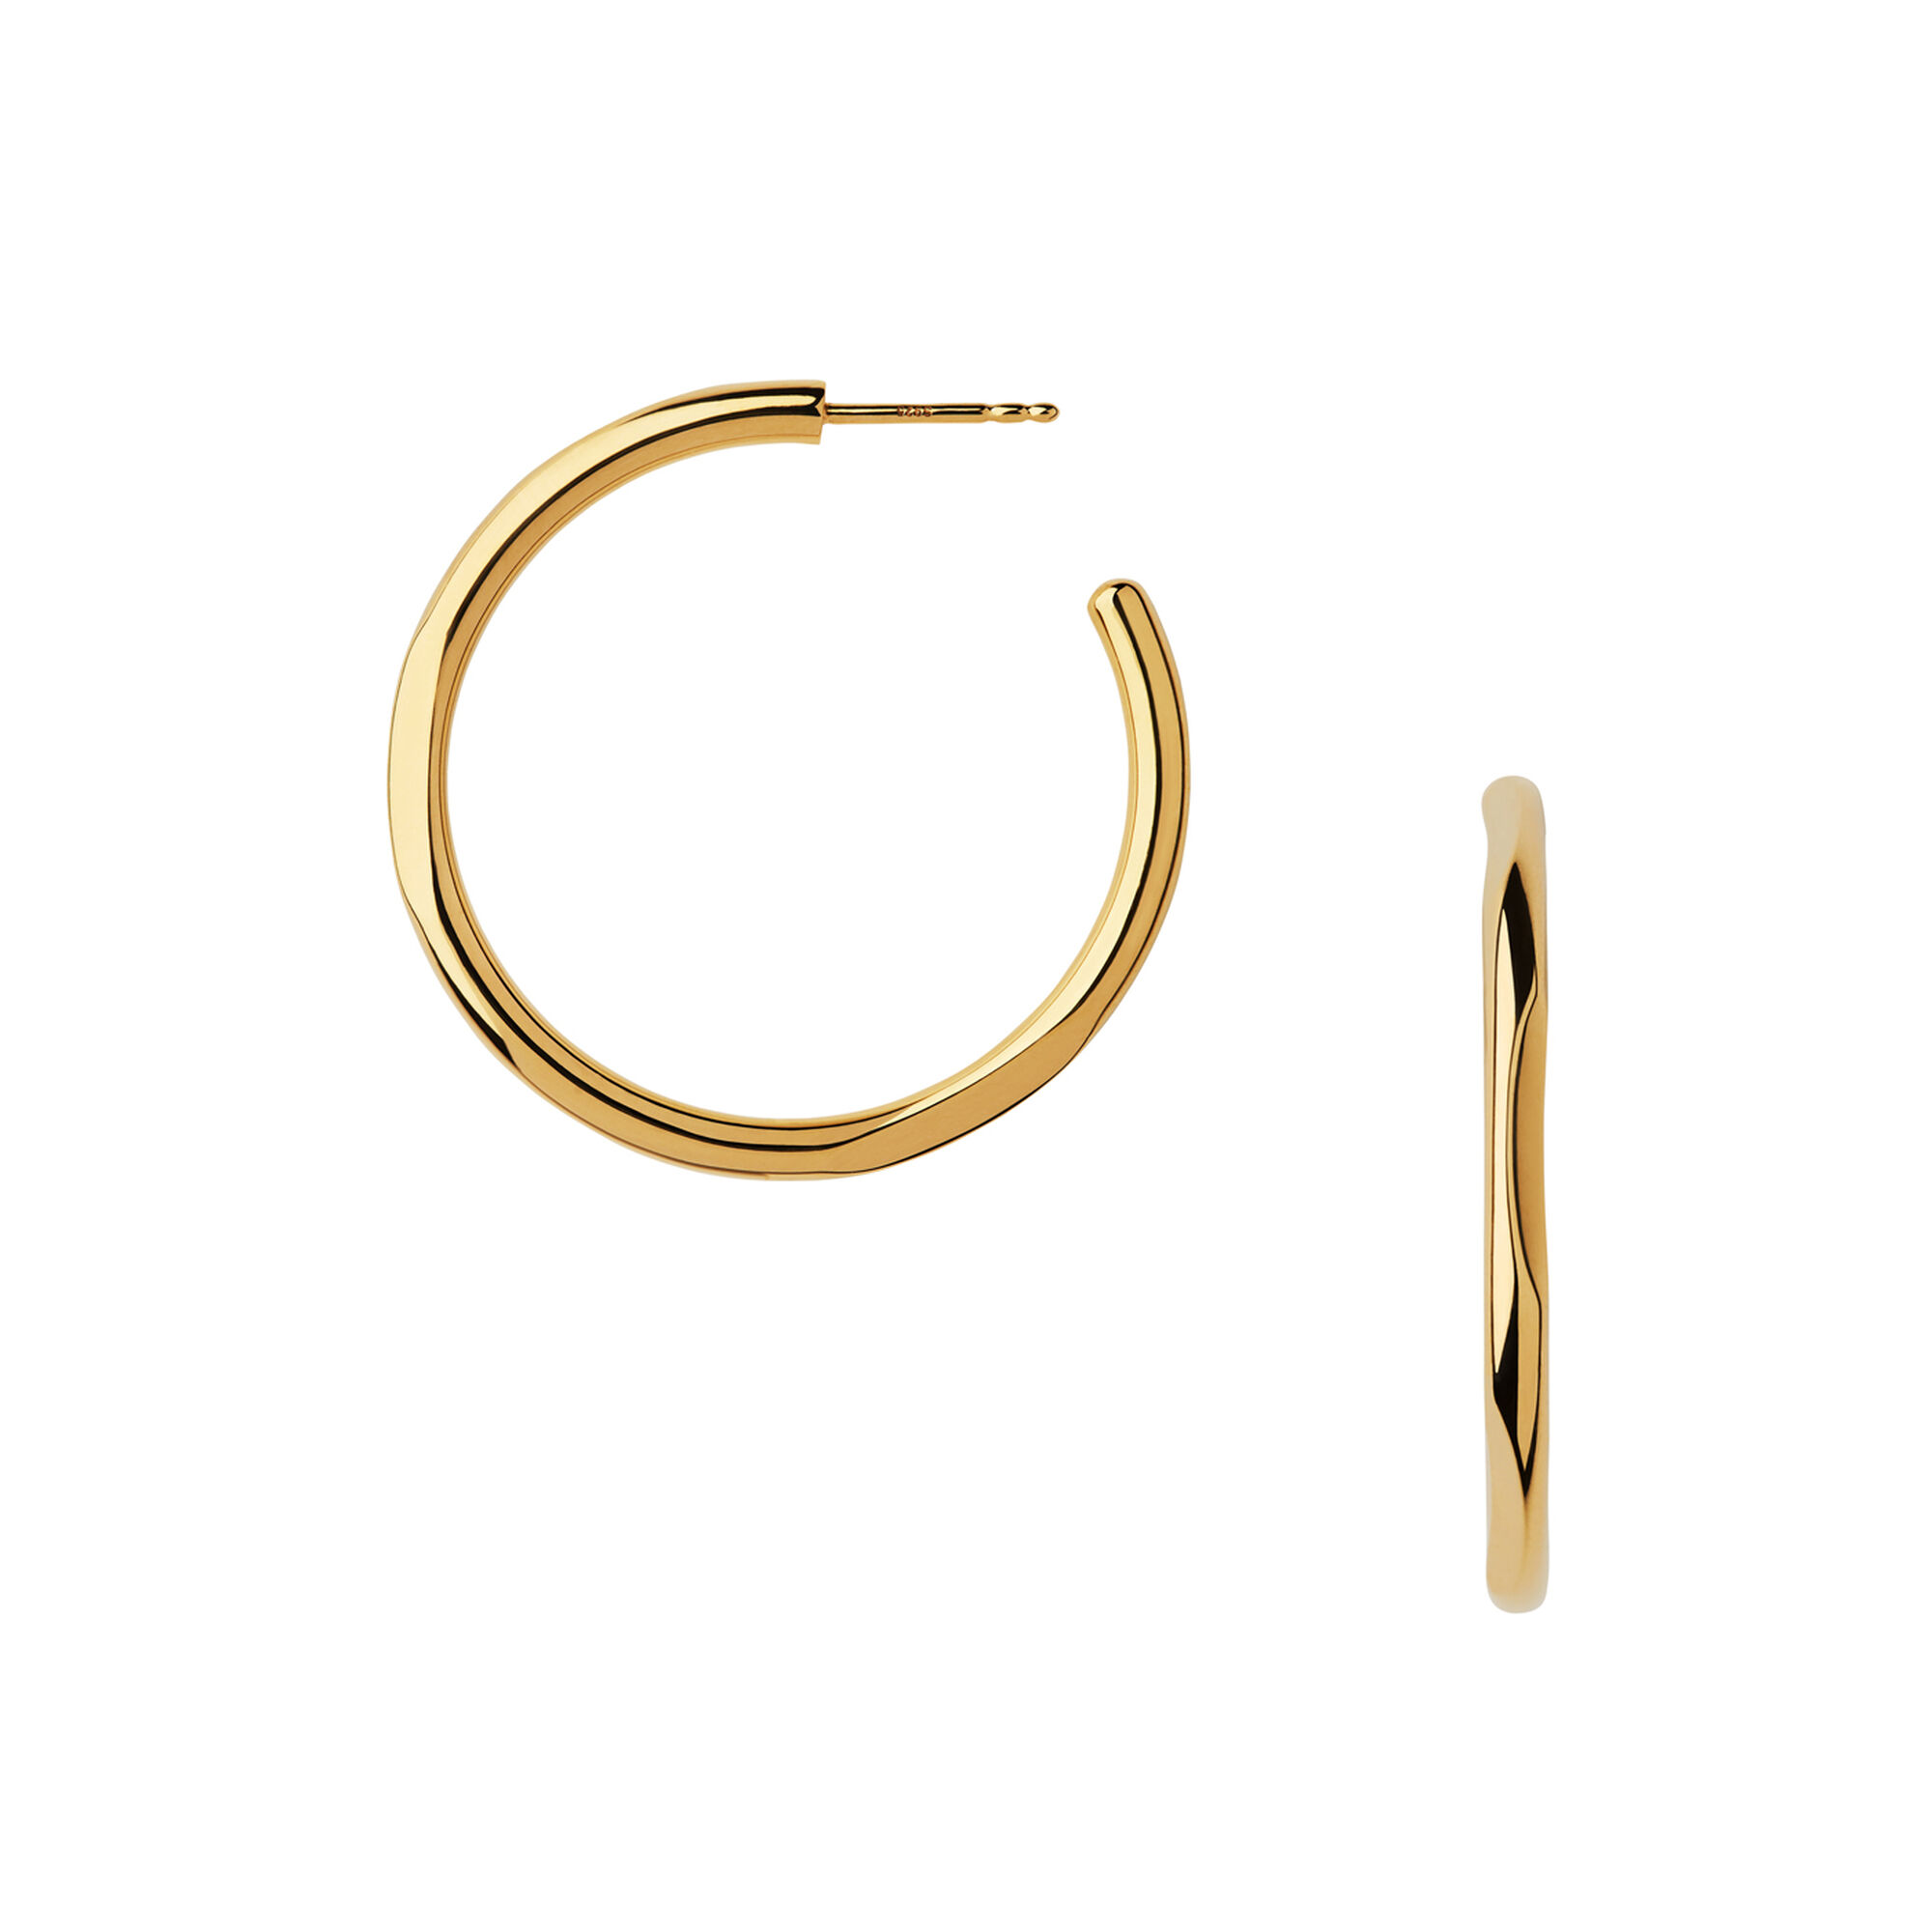 by richard hoop sale earrings from jon earring uk mood jewellery zoom gold